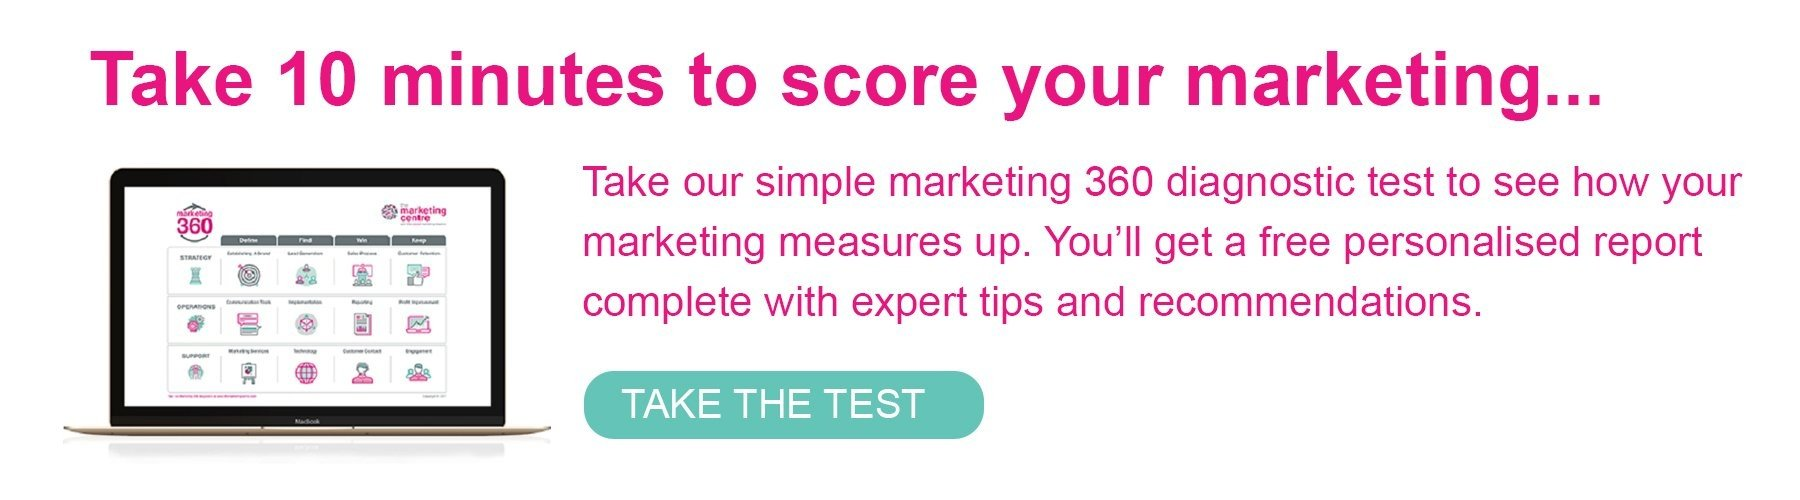 Take the 360 test